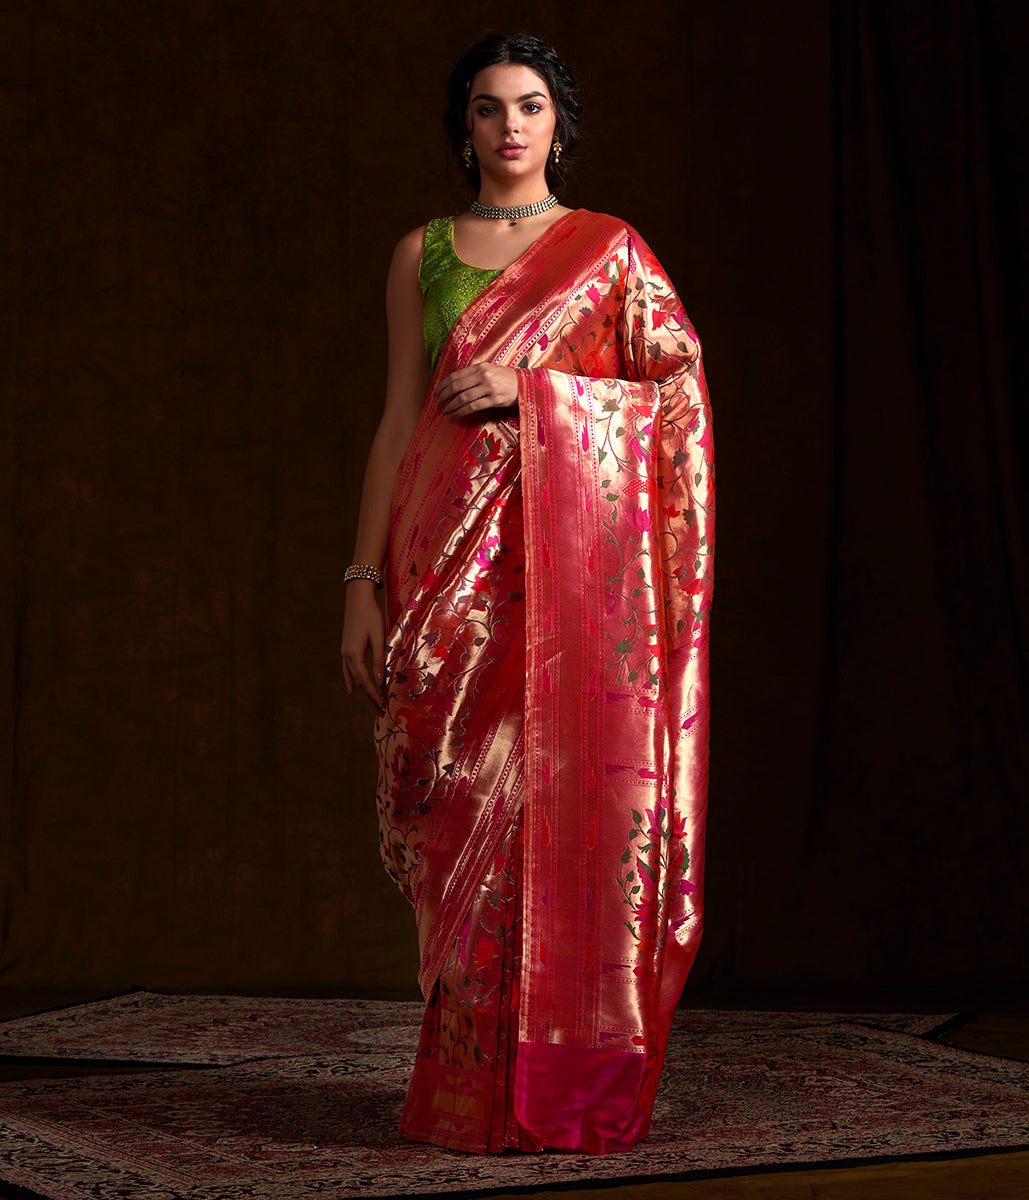 Handwoven Banarasi Paithani saree with meenakari